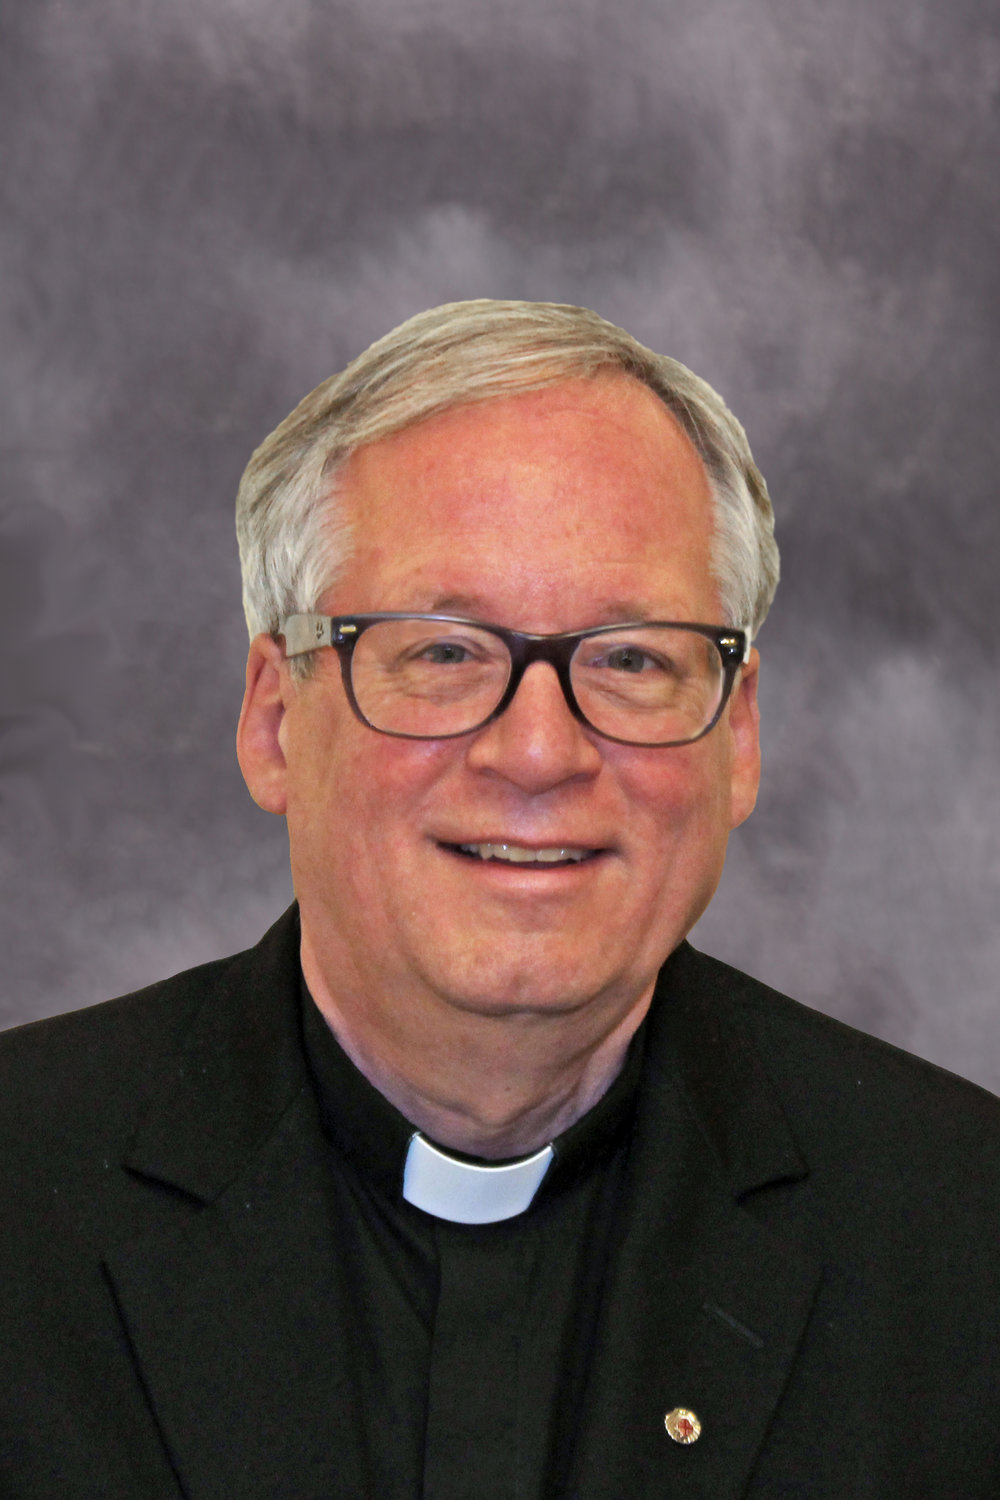 Monsignor David Cox, pastor of Mary Immaculate Parish in Kirksville and the Mission of St. Rose of Lima in Novinger, shares insights into St. Joseph and his relationship with Mary and Jesus.